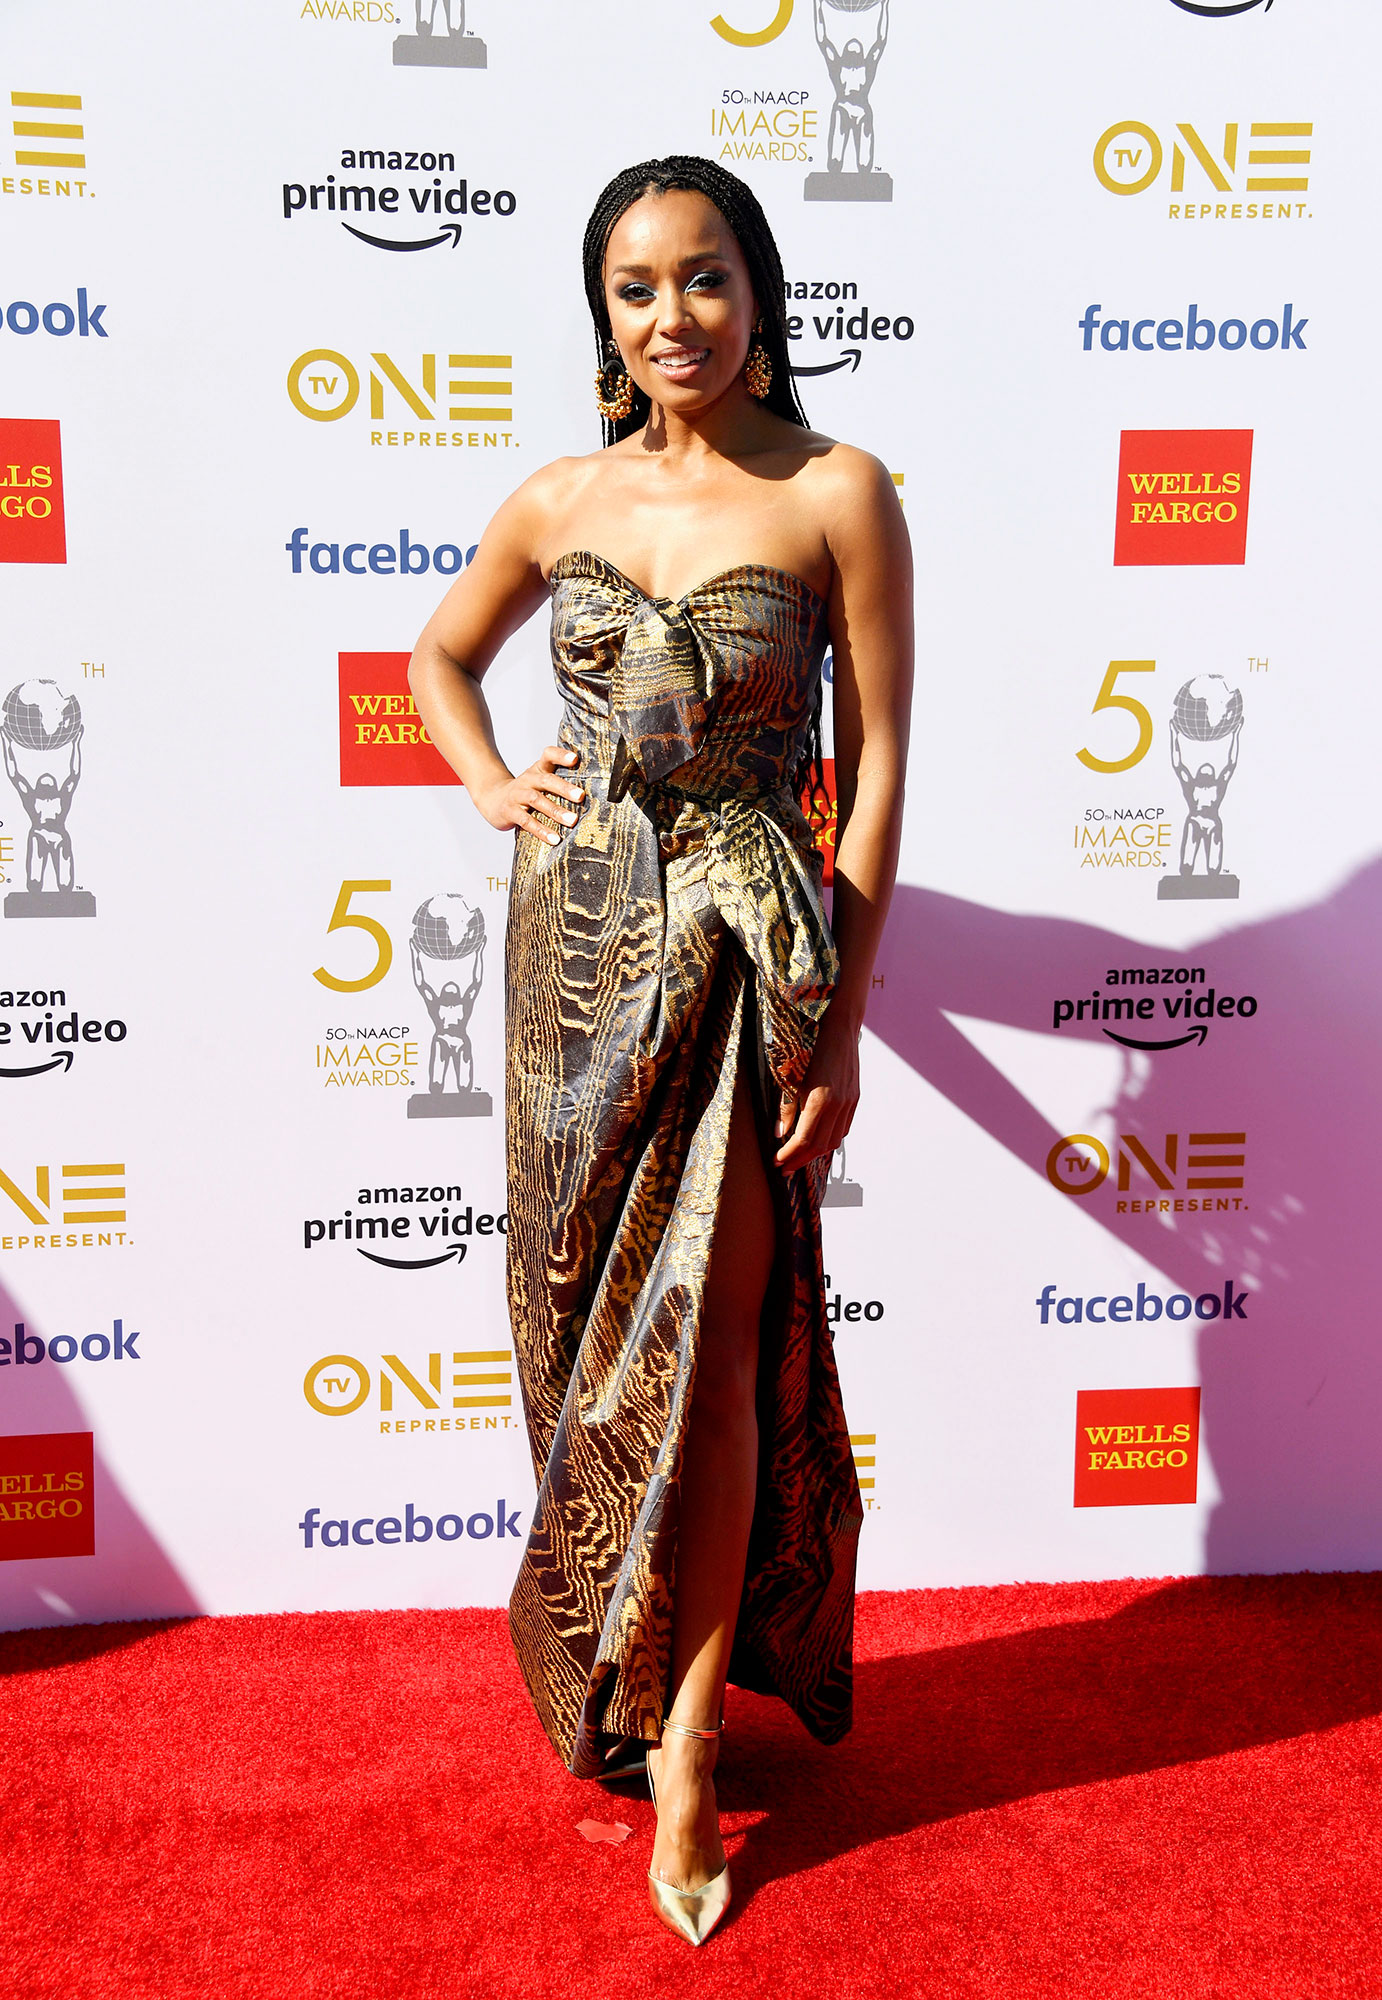 Melanie Liburd See the Stars at the NAACP Image Awards - Wearing a strapless Oscar de la Renta gown with a thigh-high slit and Stella Luna metallic pumps.